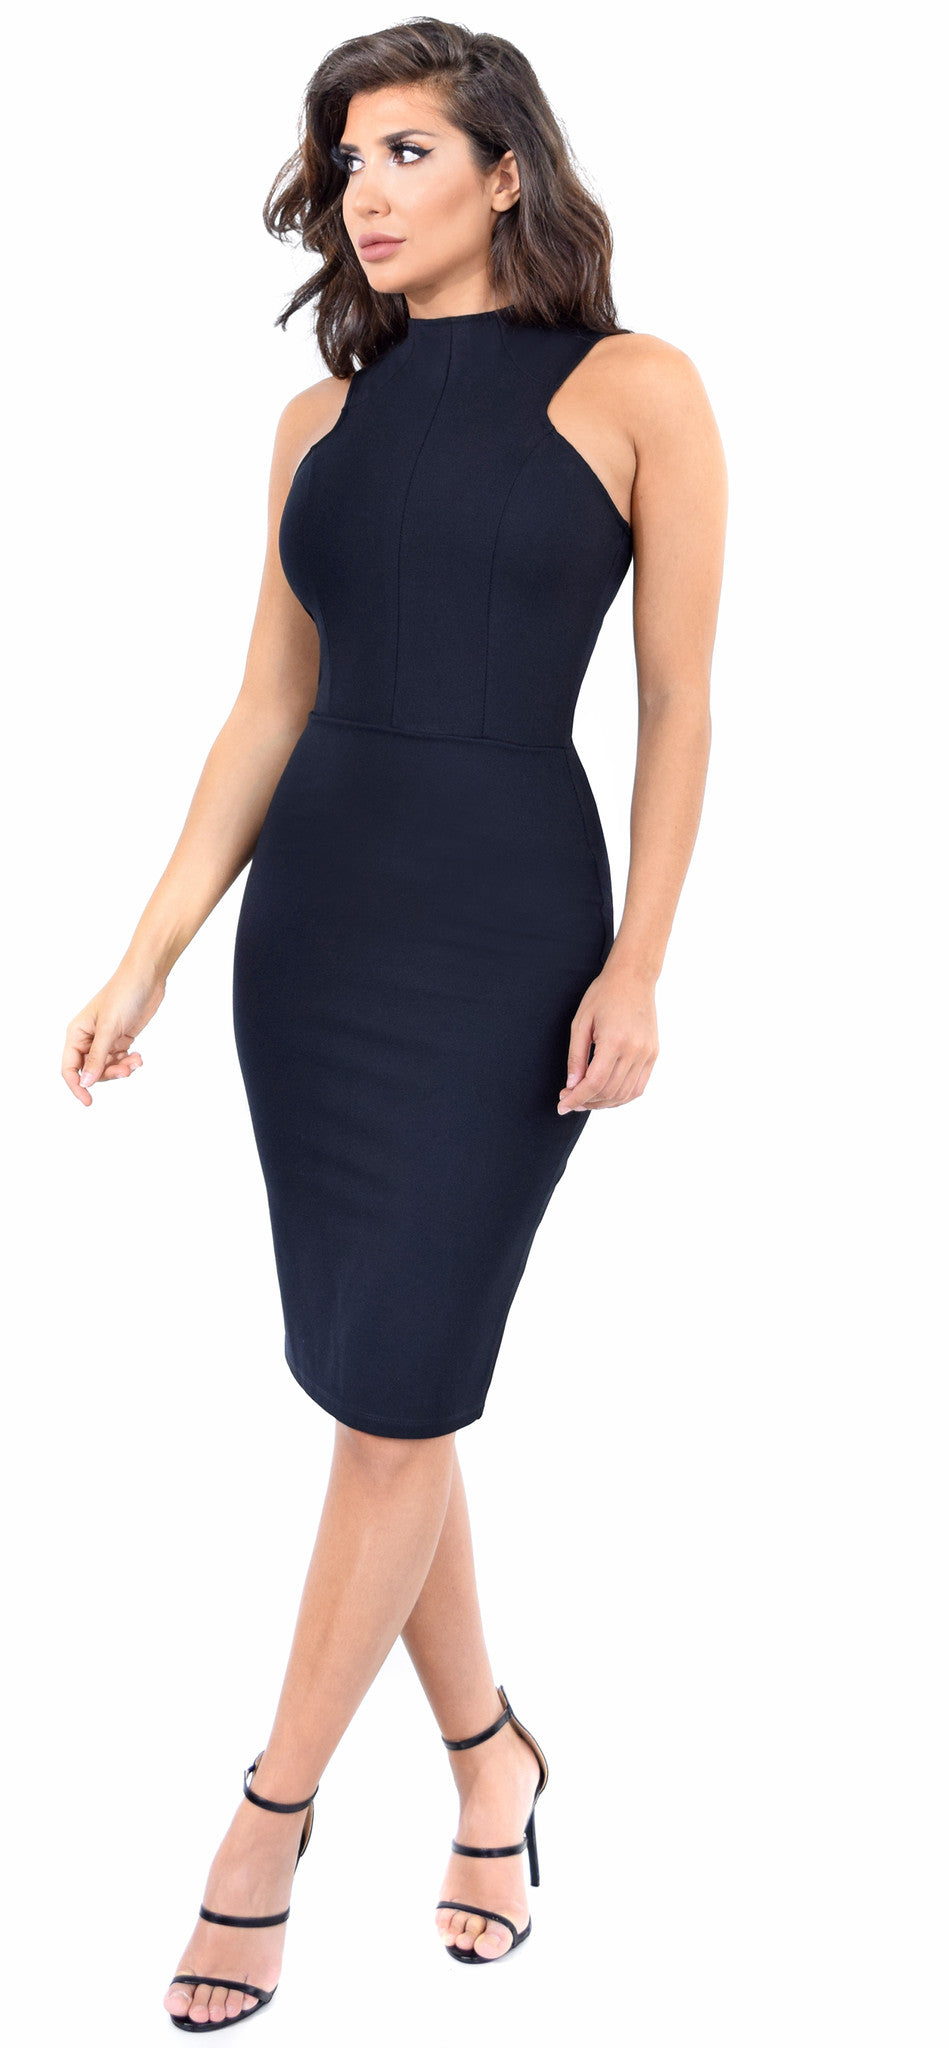 Solana Black Midi Dress - Emprada